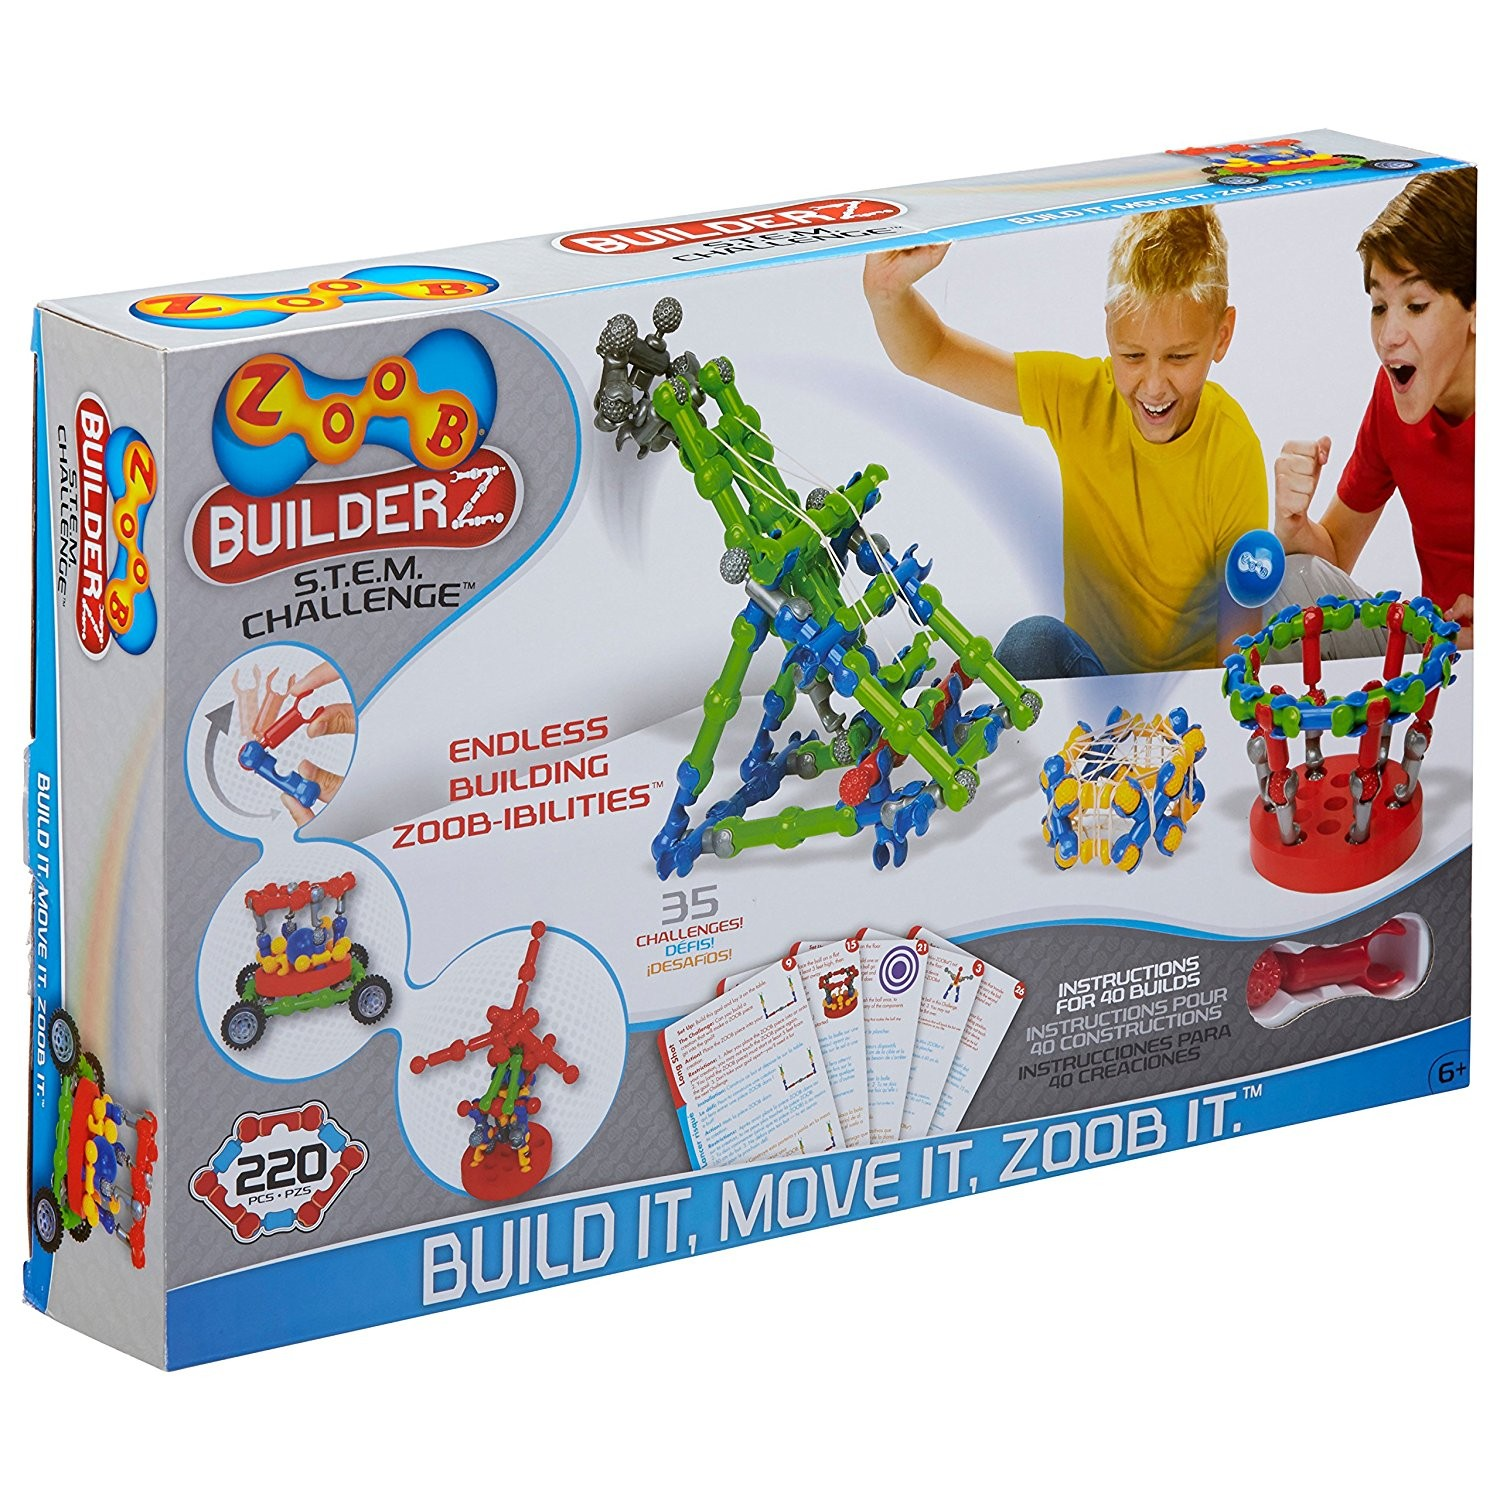 Construction Toys For 10 Year Olds Educational Planet Scrov10snapcircuitsnaproverpic1024x736jpg Zoob Stem Challenge 220 Pc Building Set